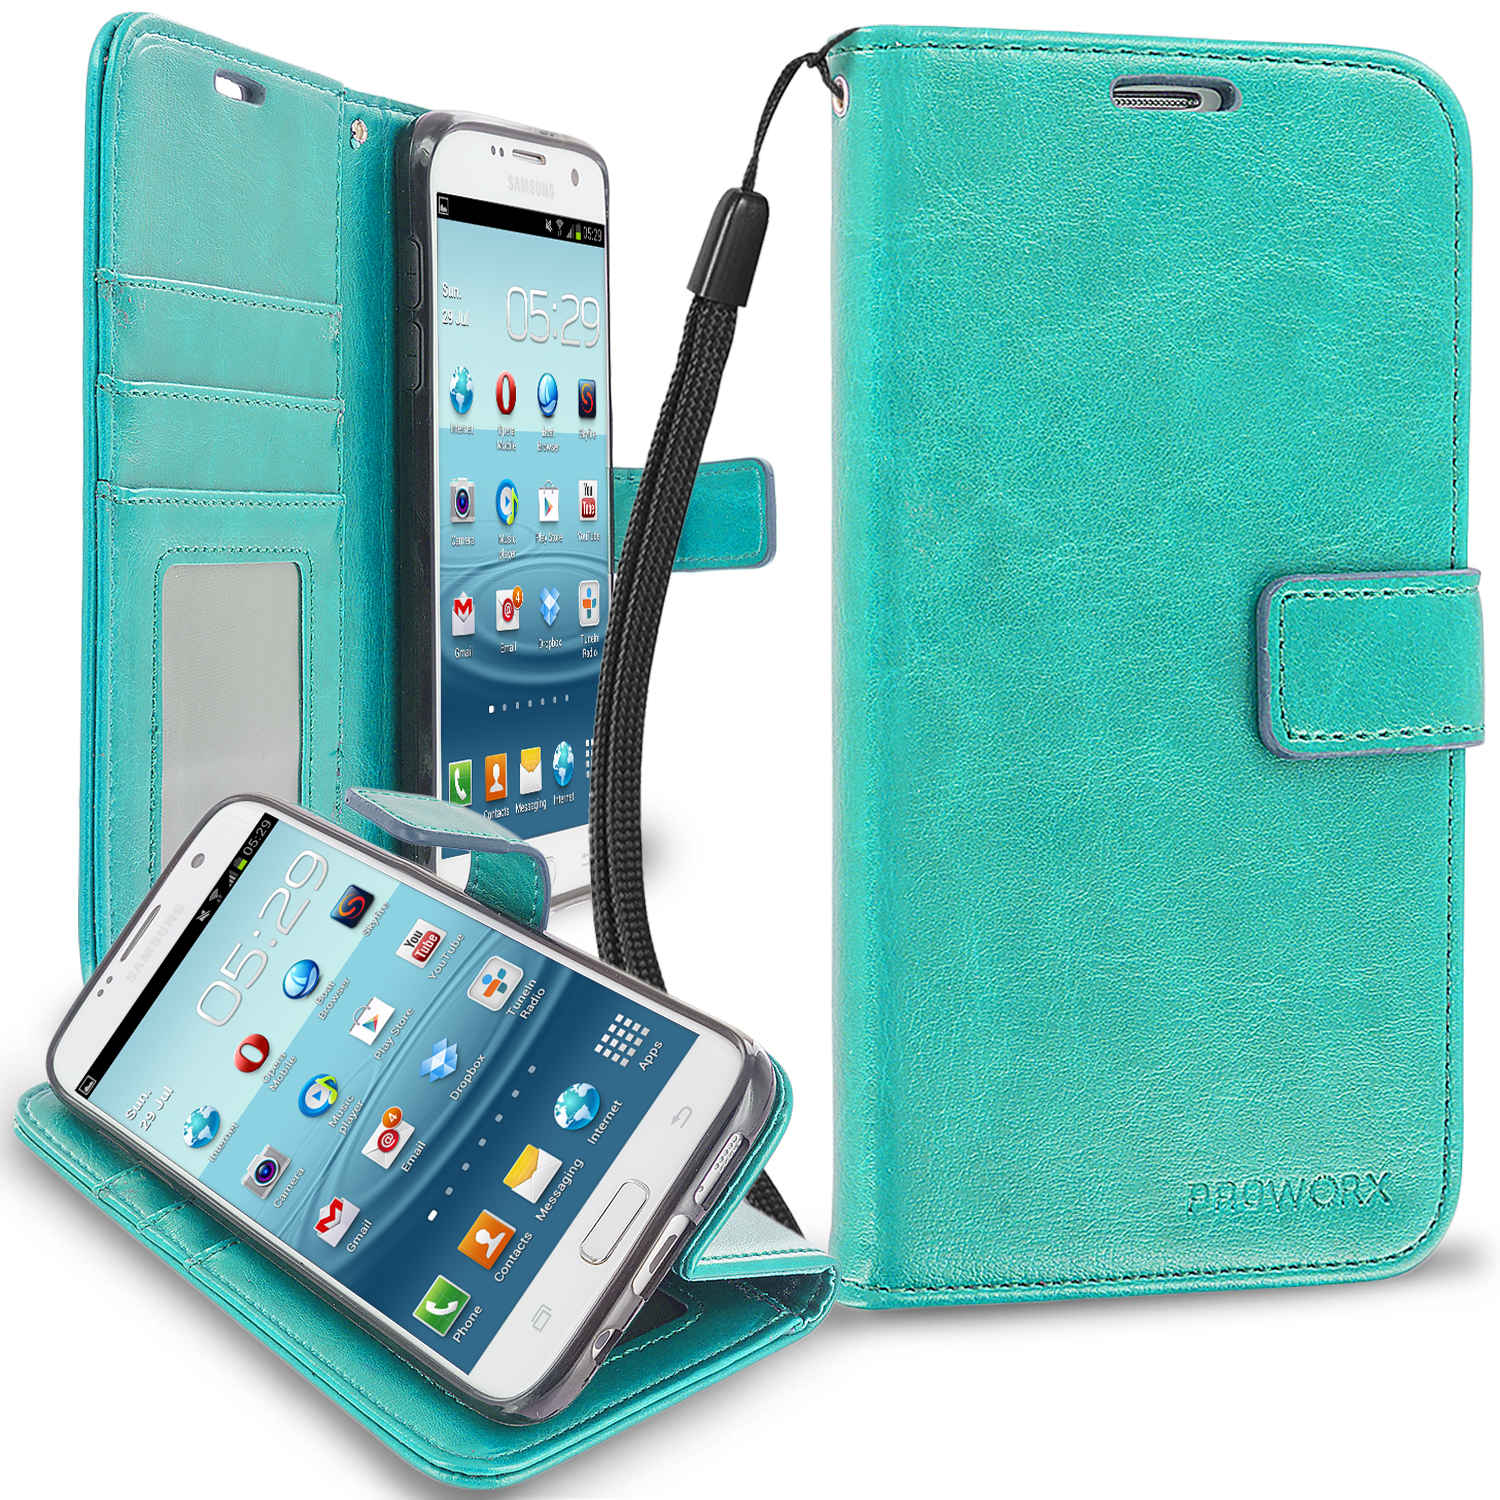 Samsung Galaxy S7 Edge Mint Green ProWorx Wallet Case Luxury PU Leather Case Cover With Card Slots & Stand